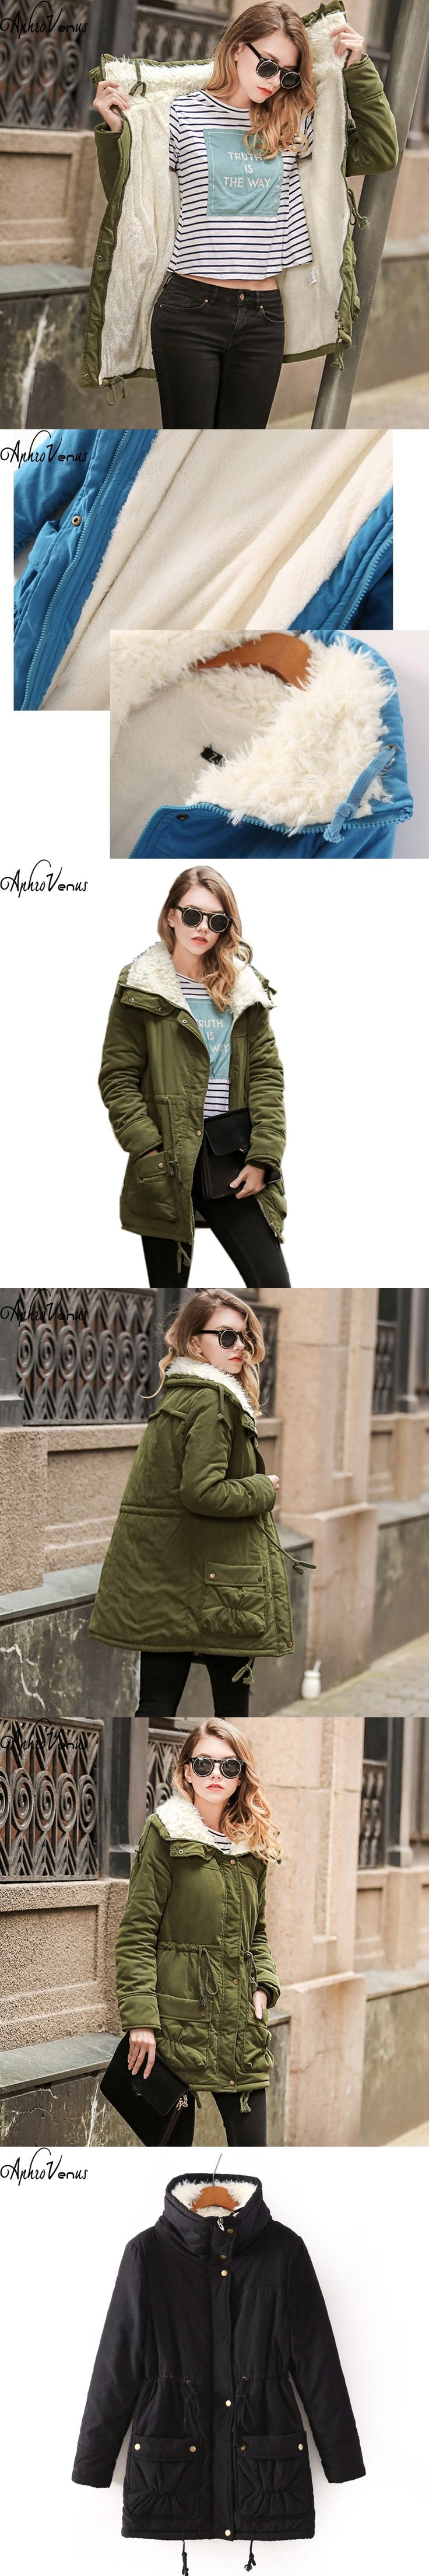 Winter Jacket Women 2017 Womens Parkas Casual Out Wear Military Solid Coat long Femme Army Green Clothes Lady Warm Coat